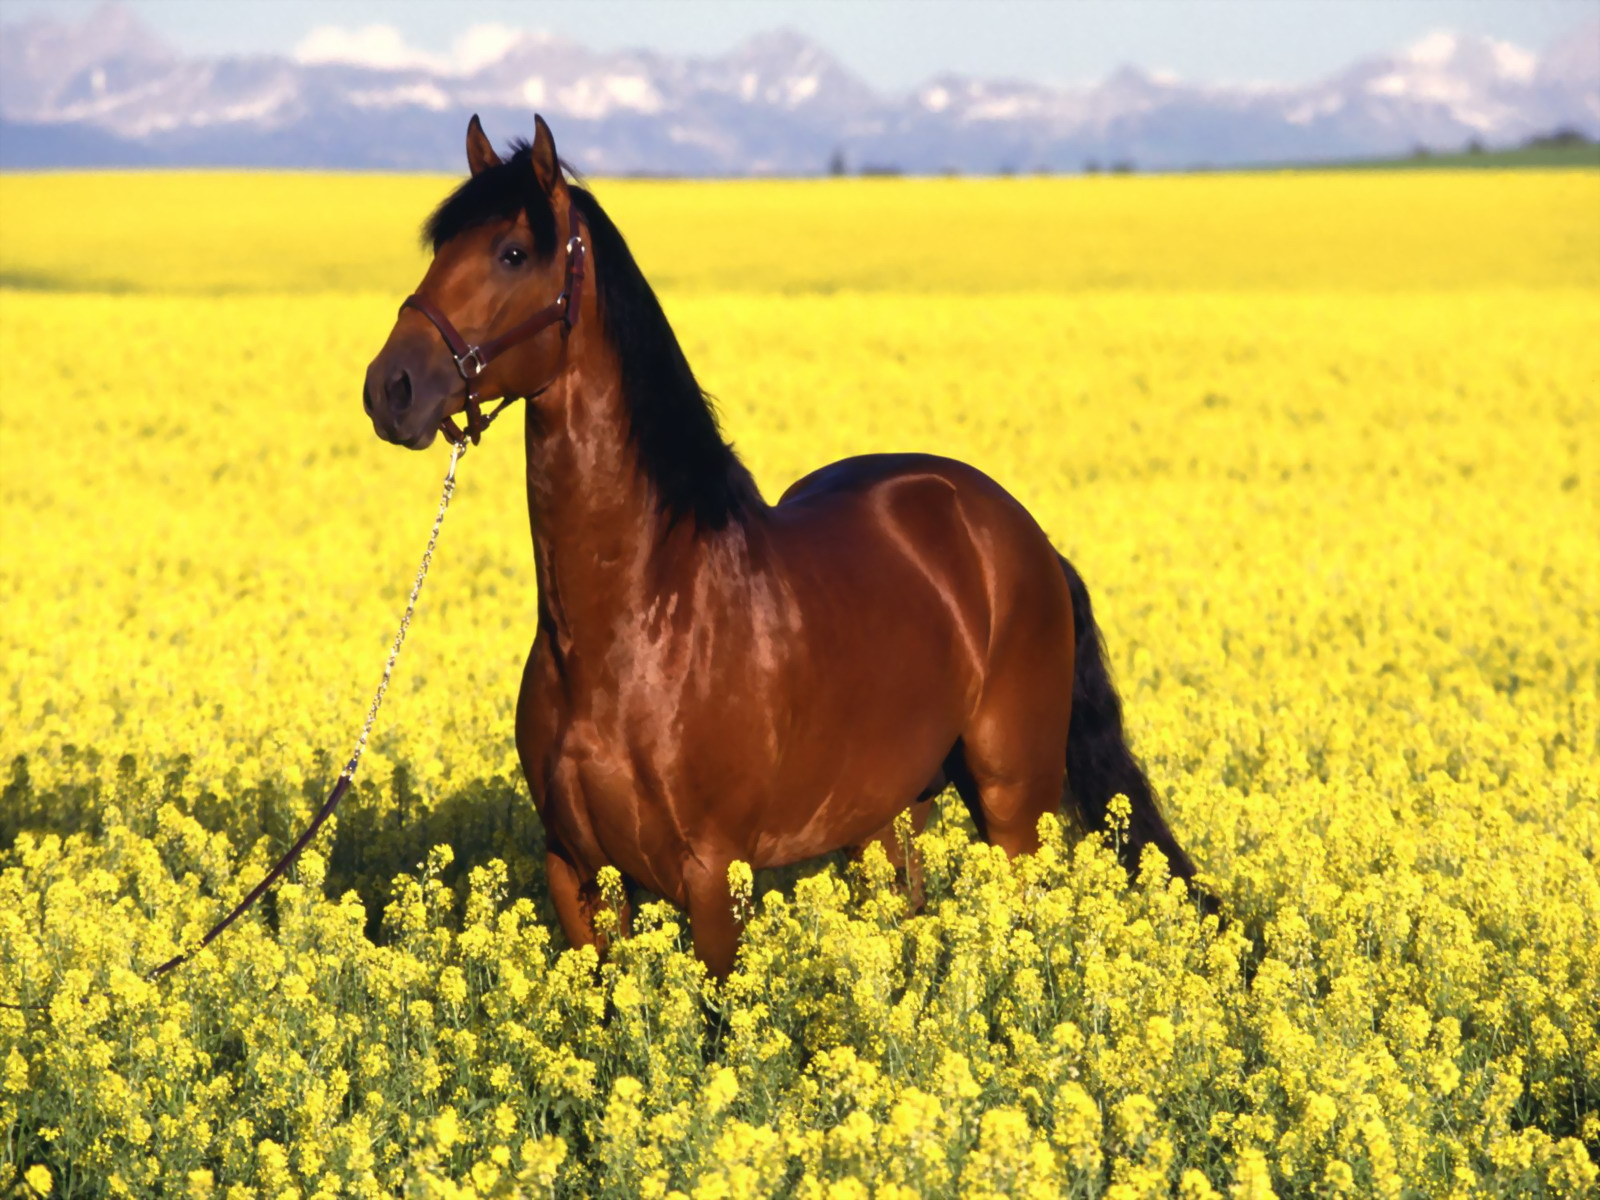 beautiful horse in the world